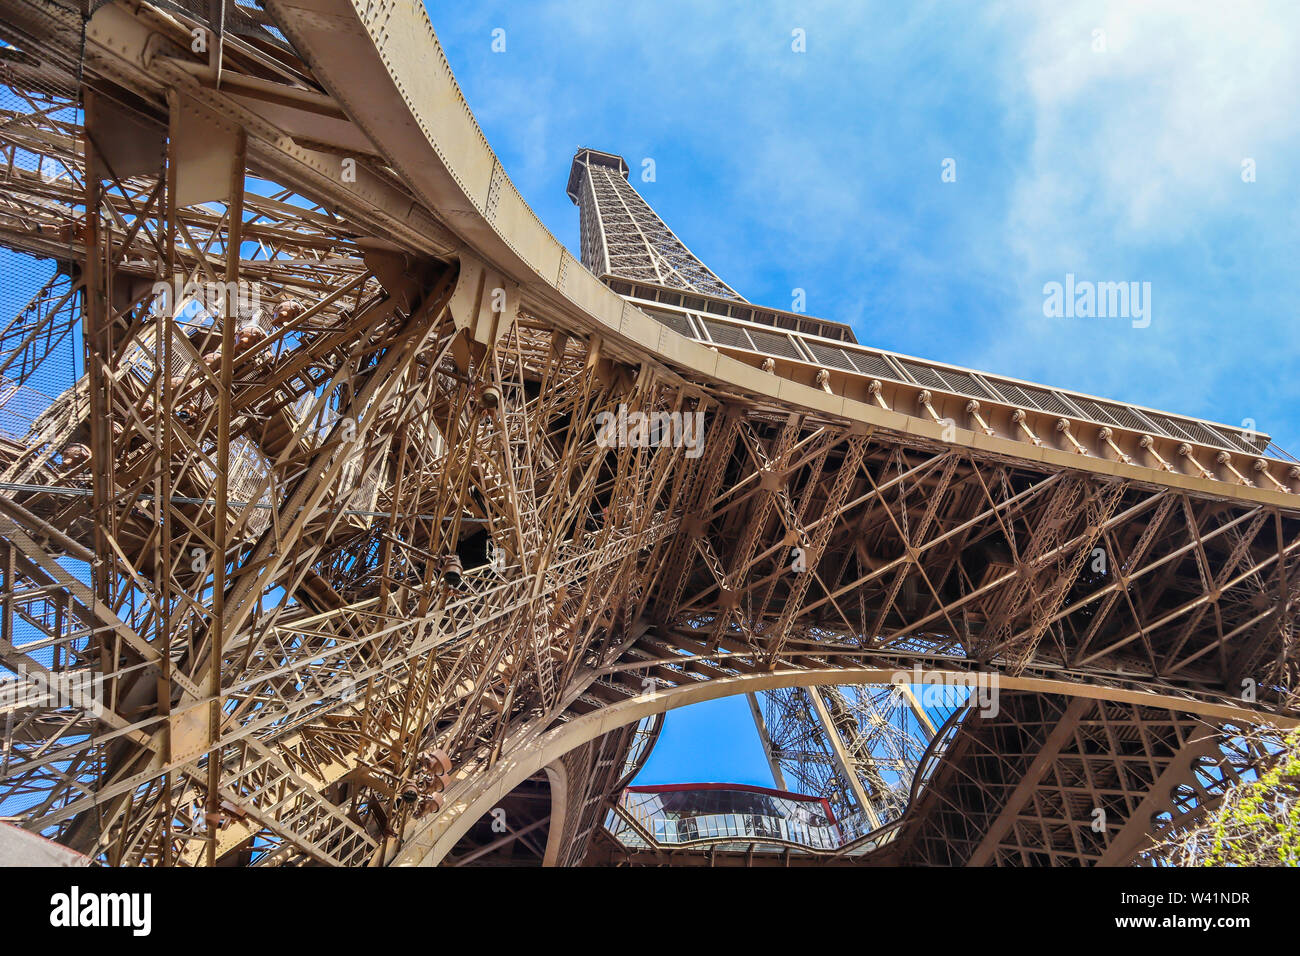 Eiffel Tower against blue sky with clouds in Paris, France. April 2019 - Stock Image